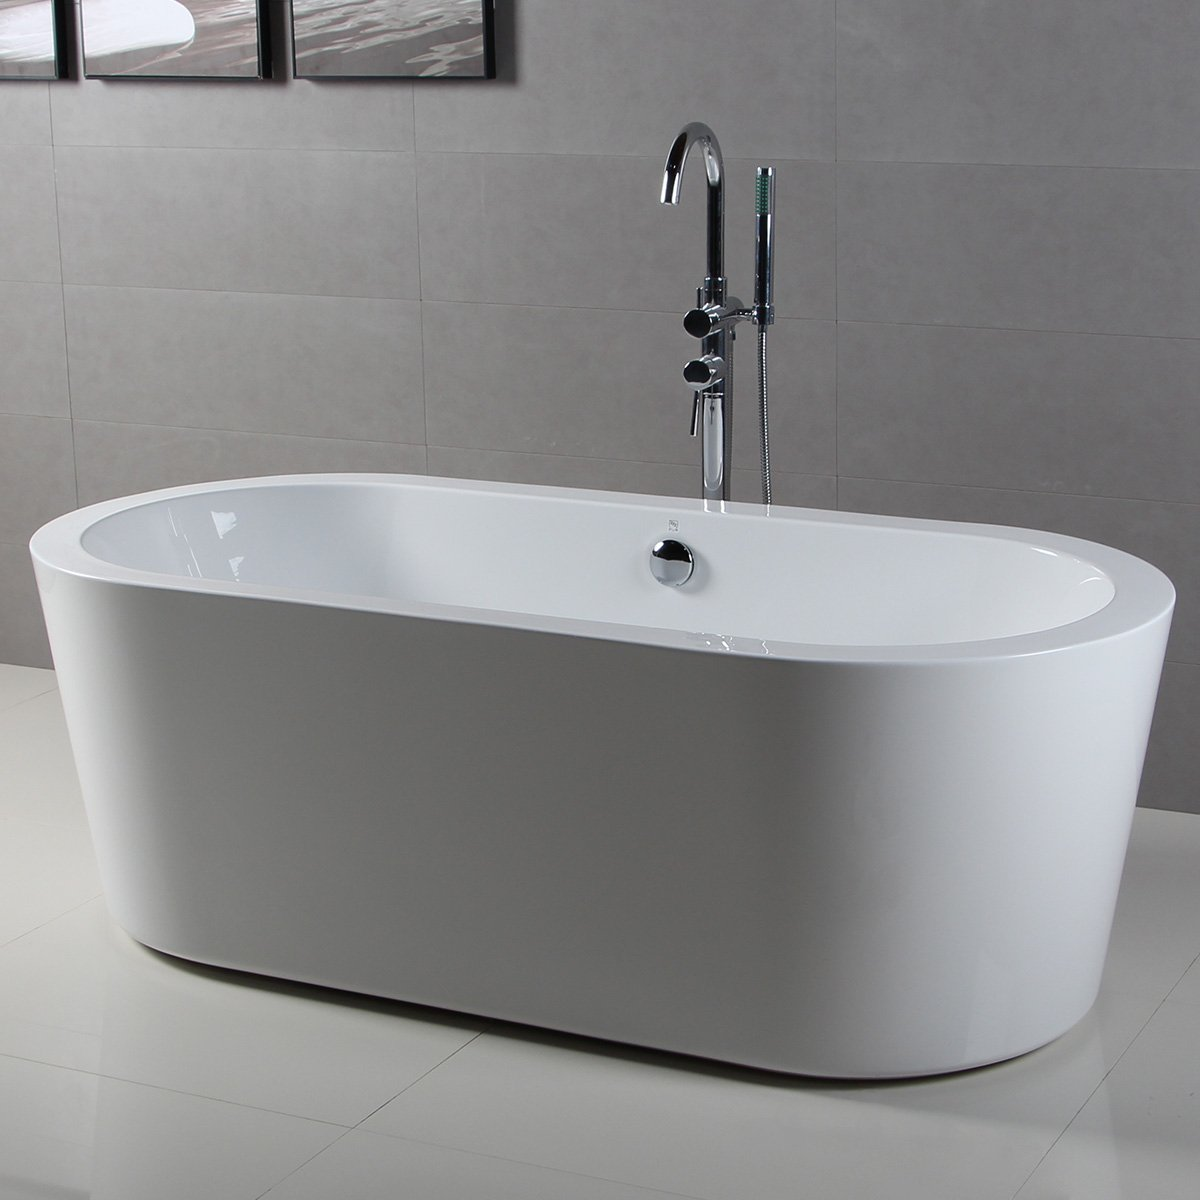 Beccfdabcba clean jetted tub clean bathtubnew design for Best acrylic bathtubs